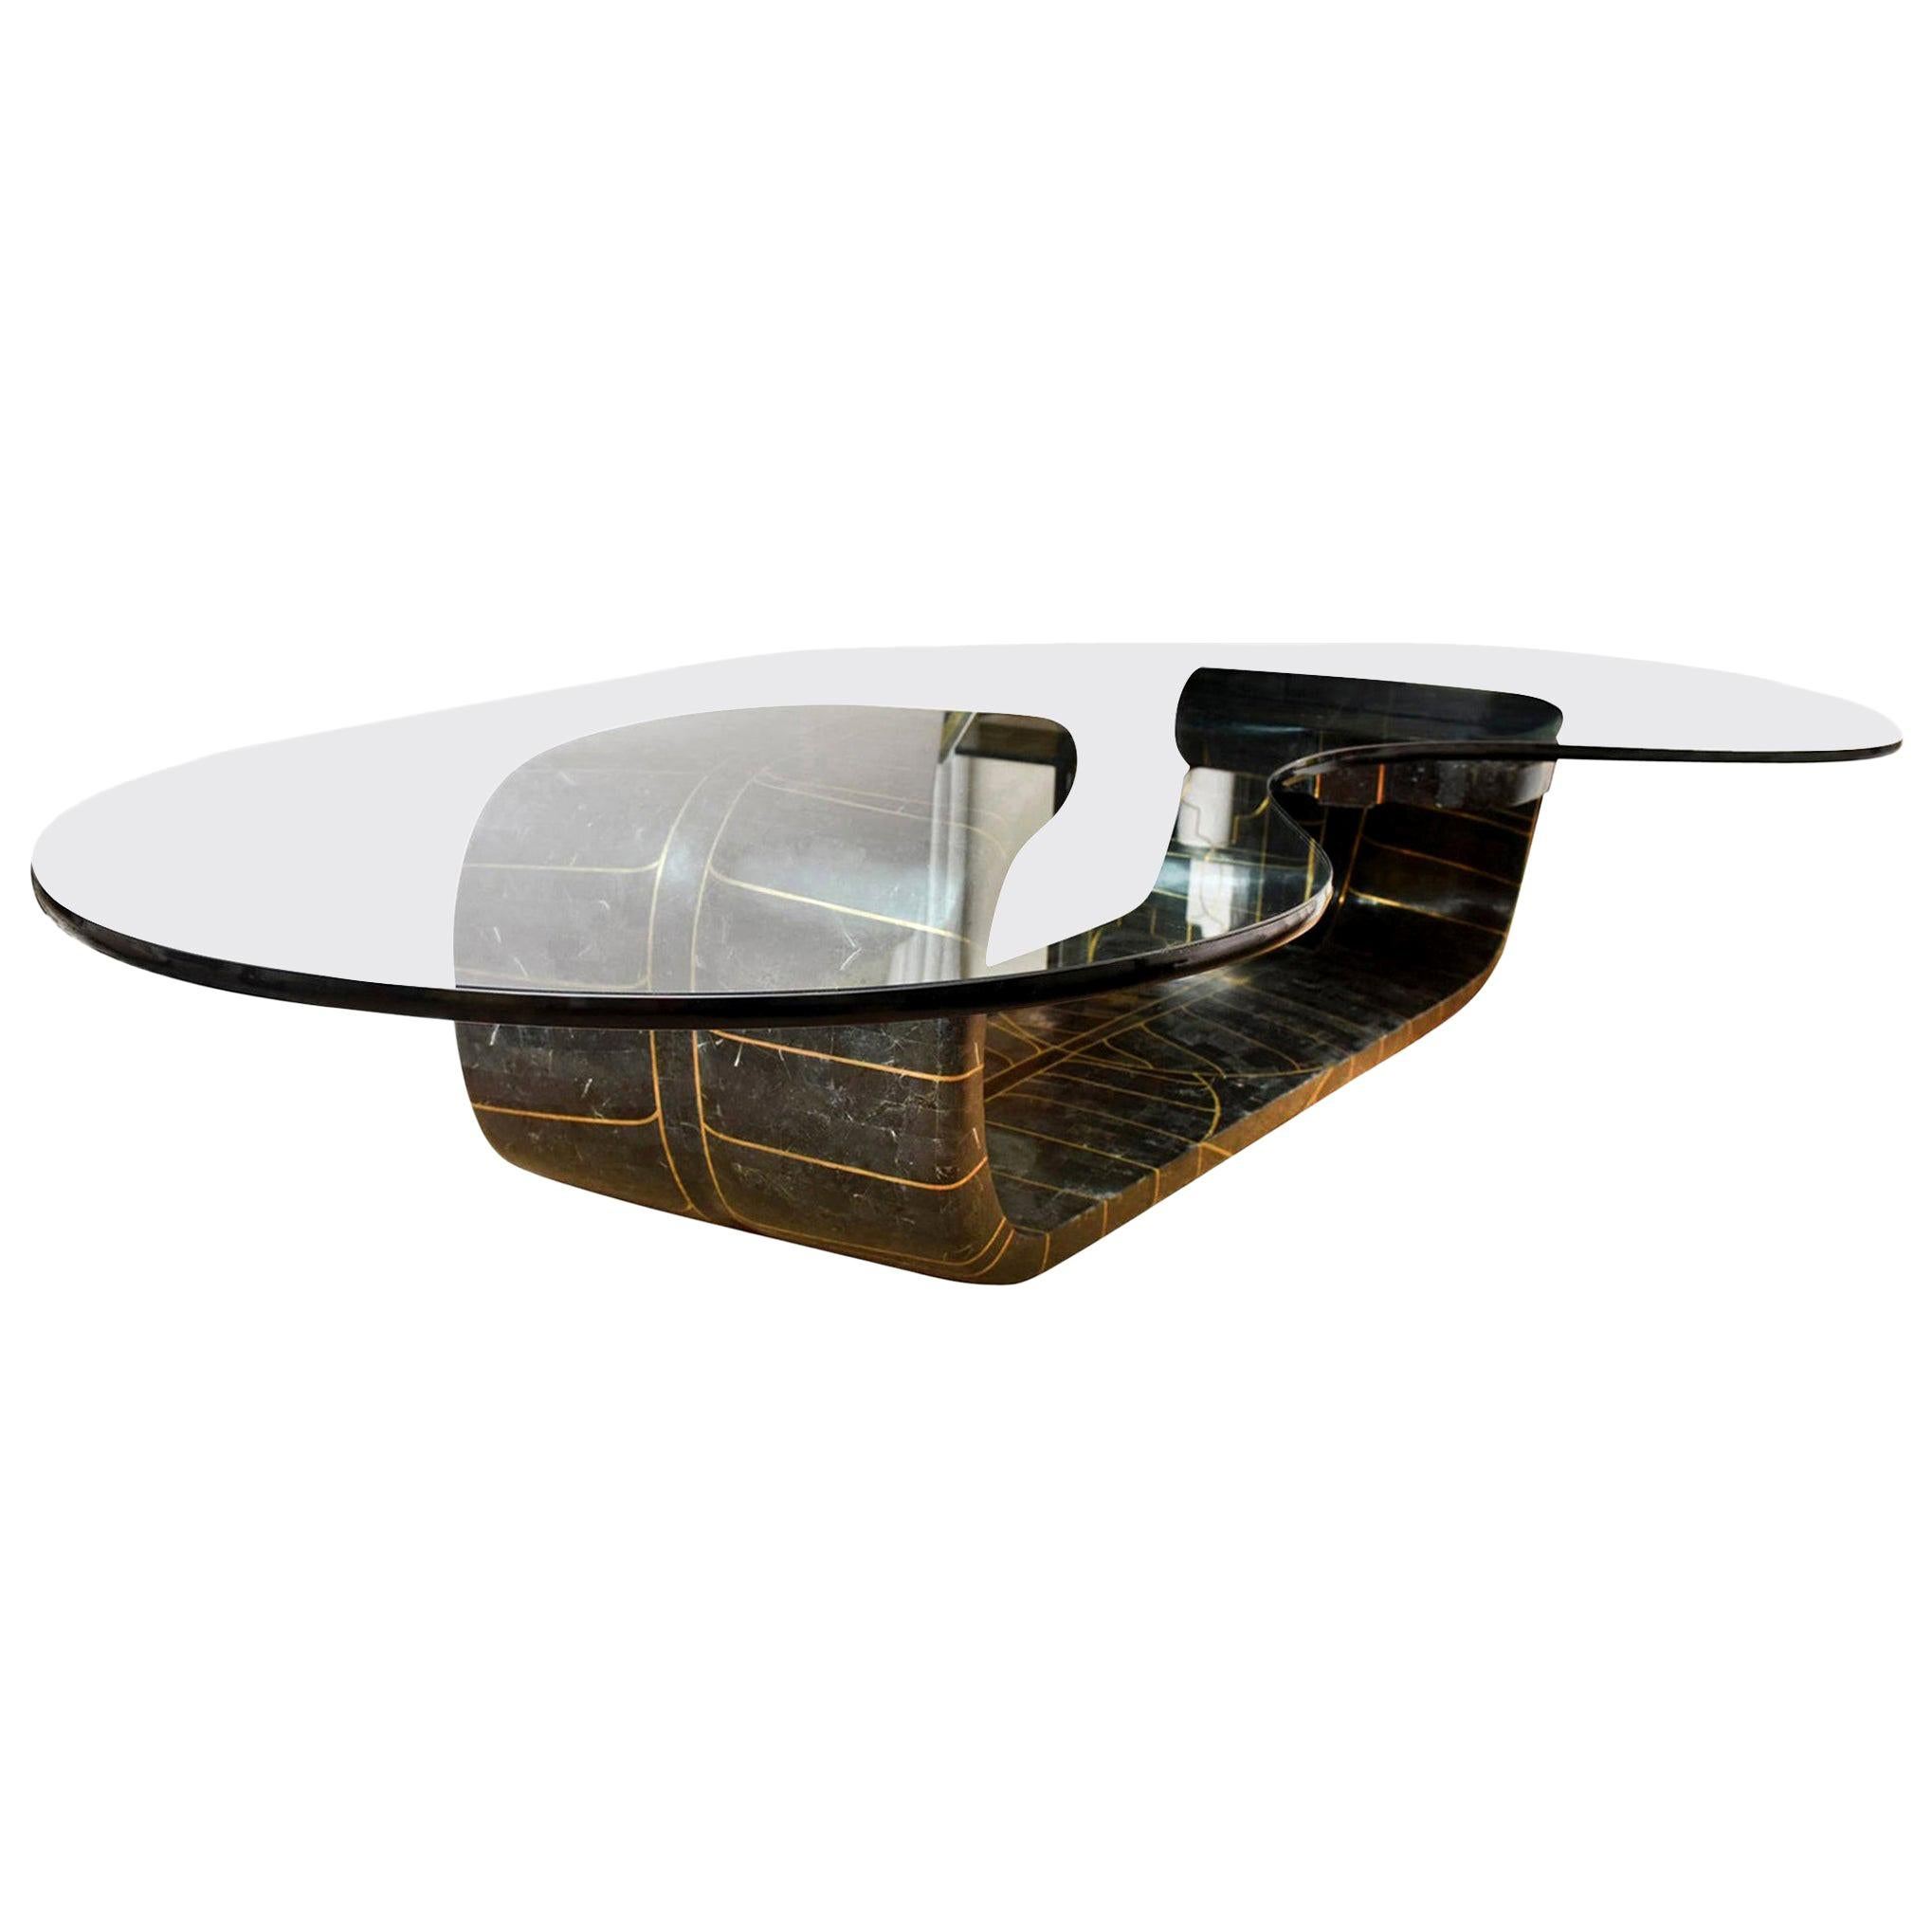 Biomorphic Tessellated Stone and Inlaid Brass Sculptural Cocktail Table